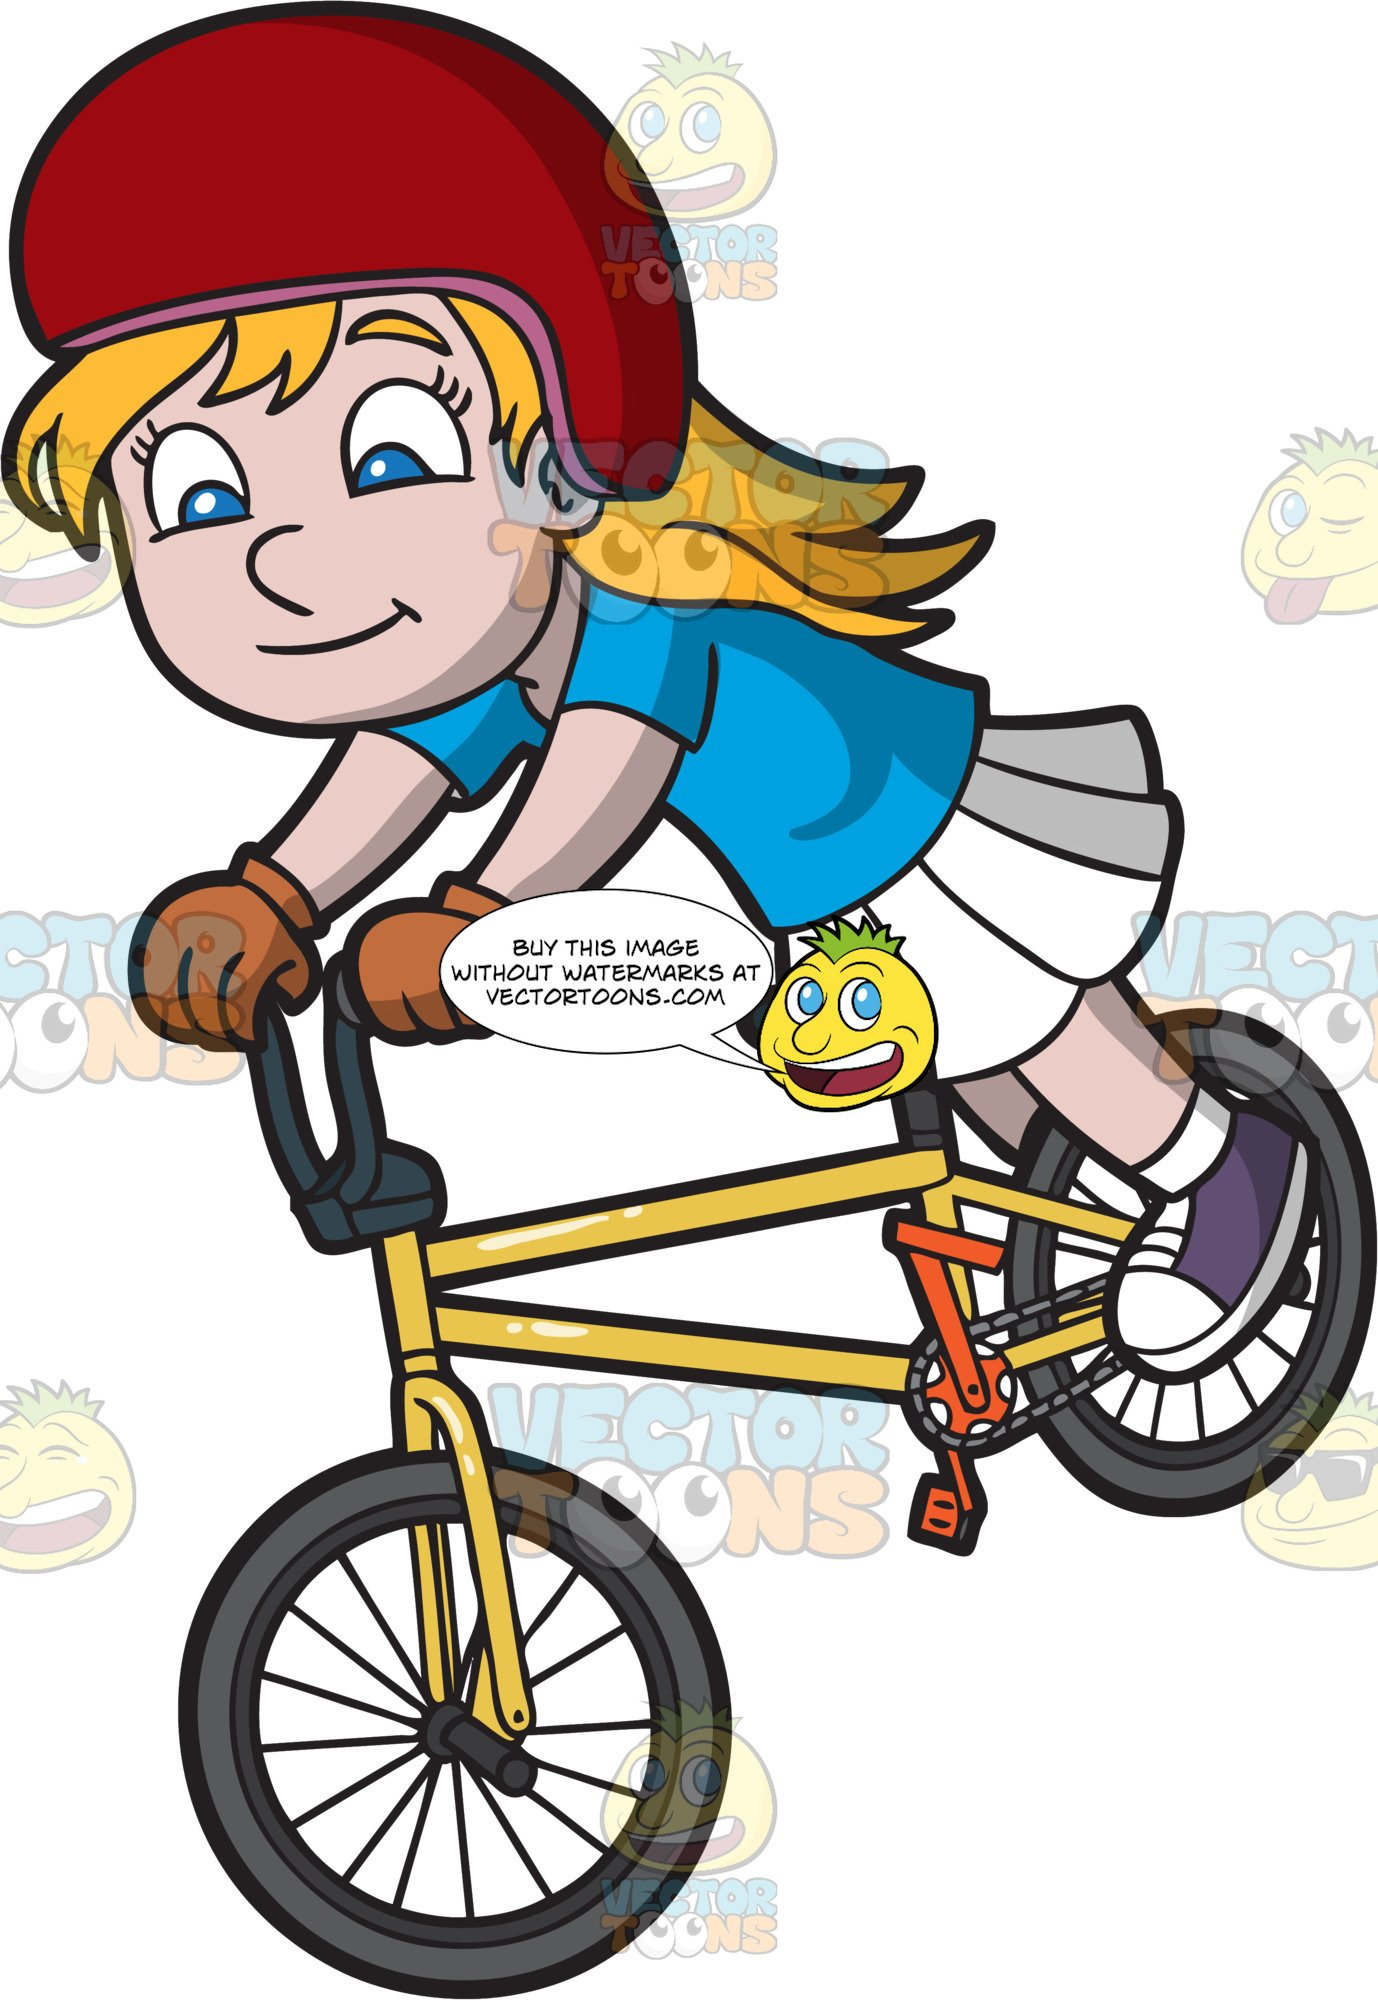 Bike trick clipart vector royalty free download A Happy Girl Doing A Nose Manual Bike Trick vector royalty free download